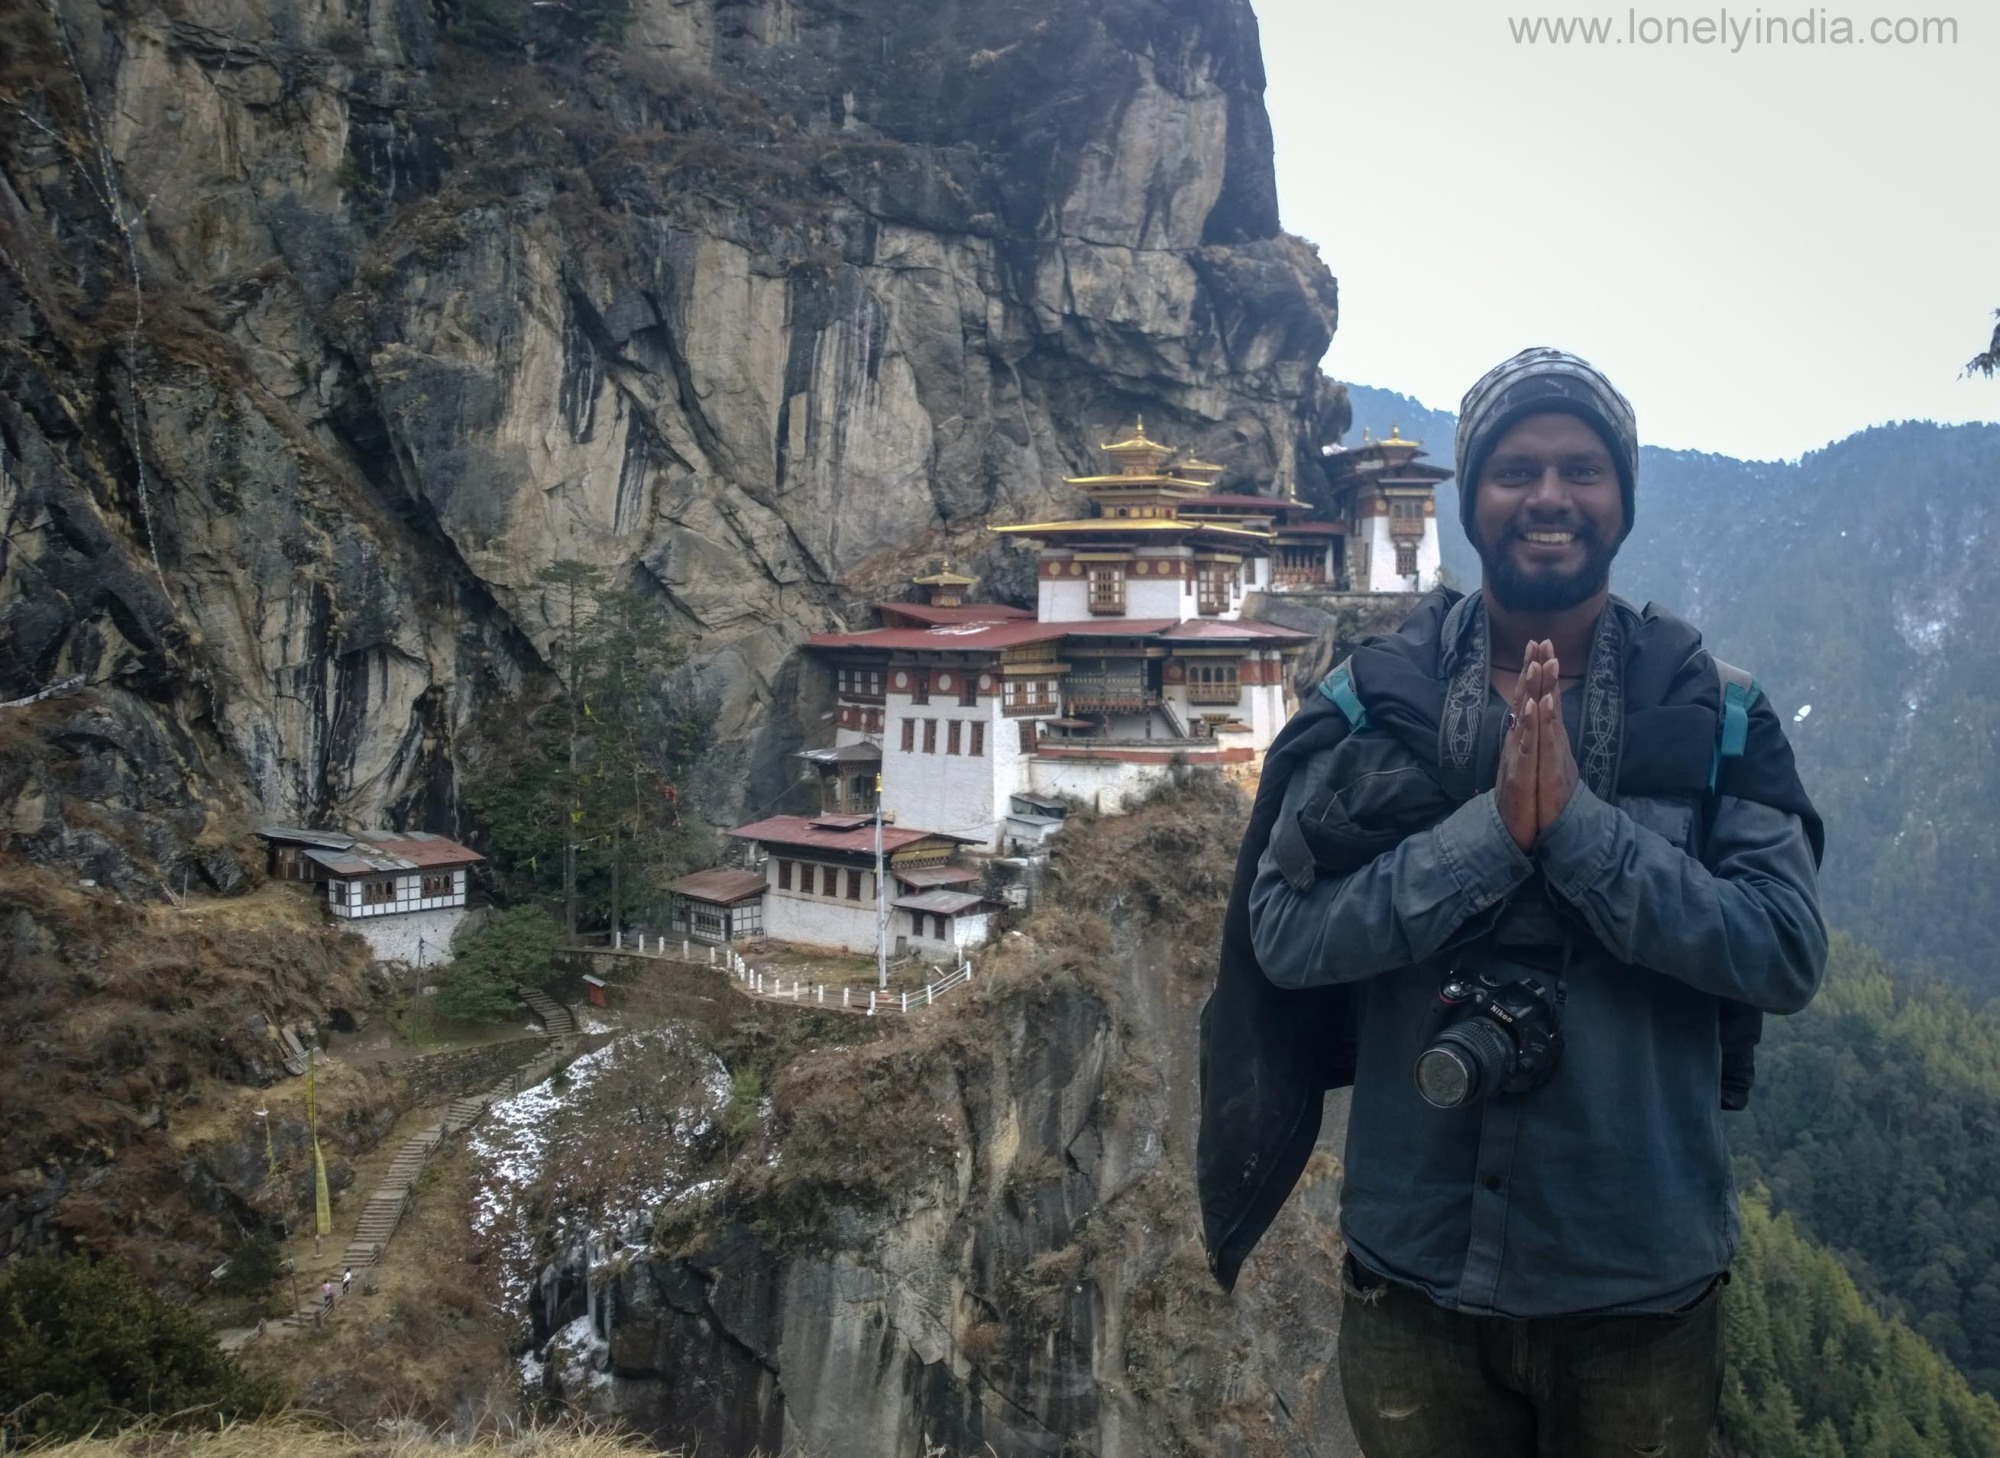 lonely india at tiger nest bhutan